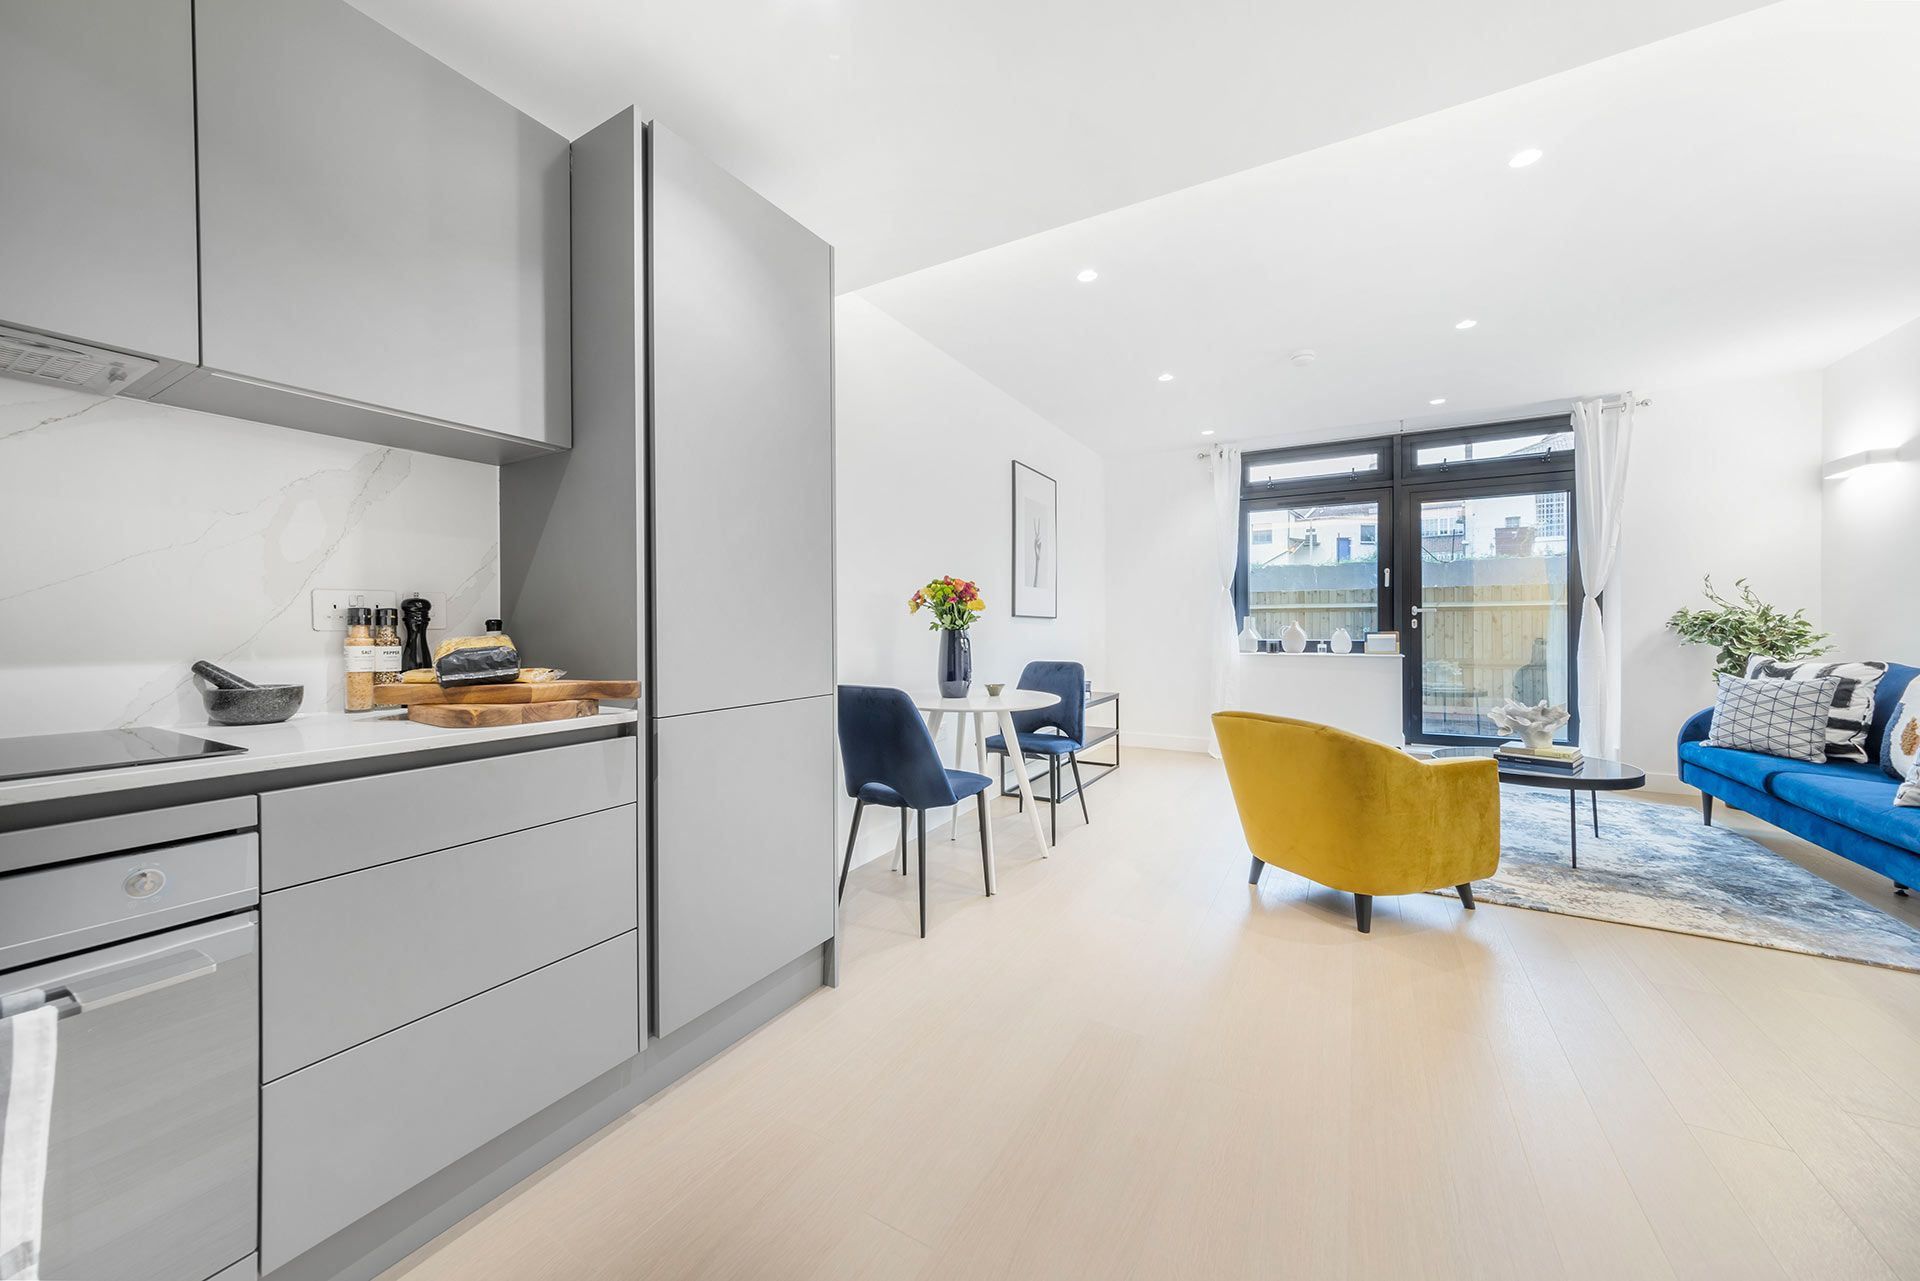 1 Bedroom apartment to rent in London SKI-VH-0064